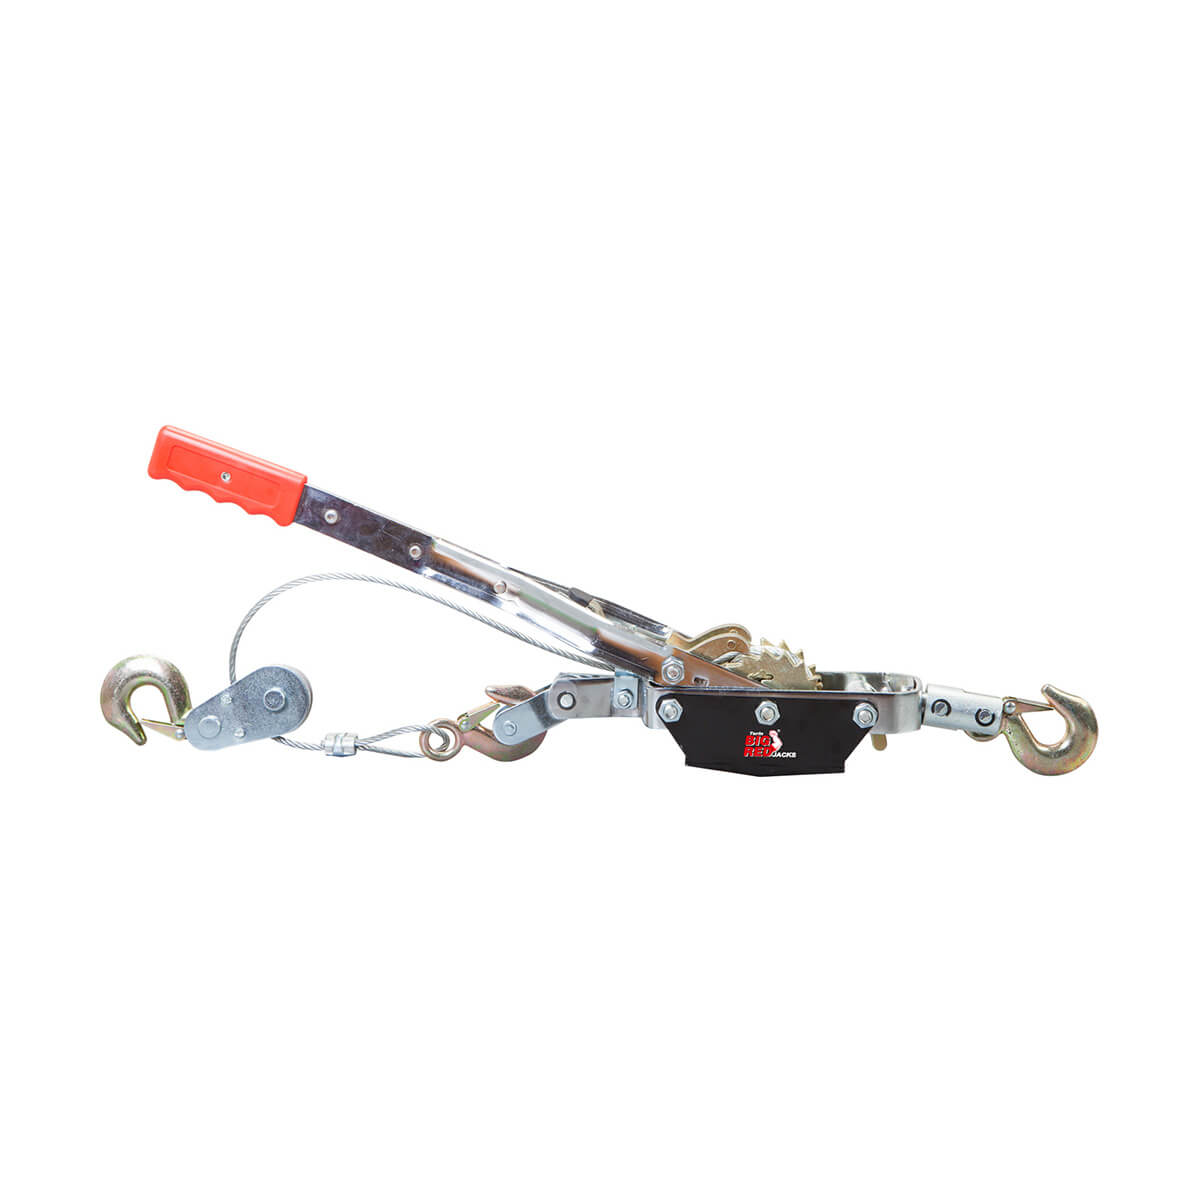 Cable Puller - 4000 lb